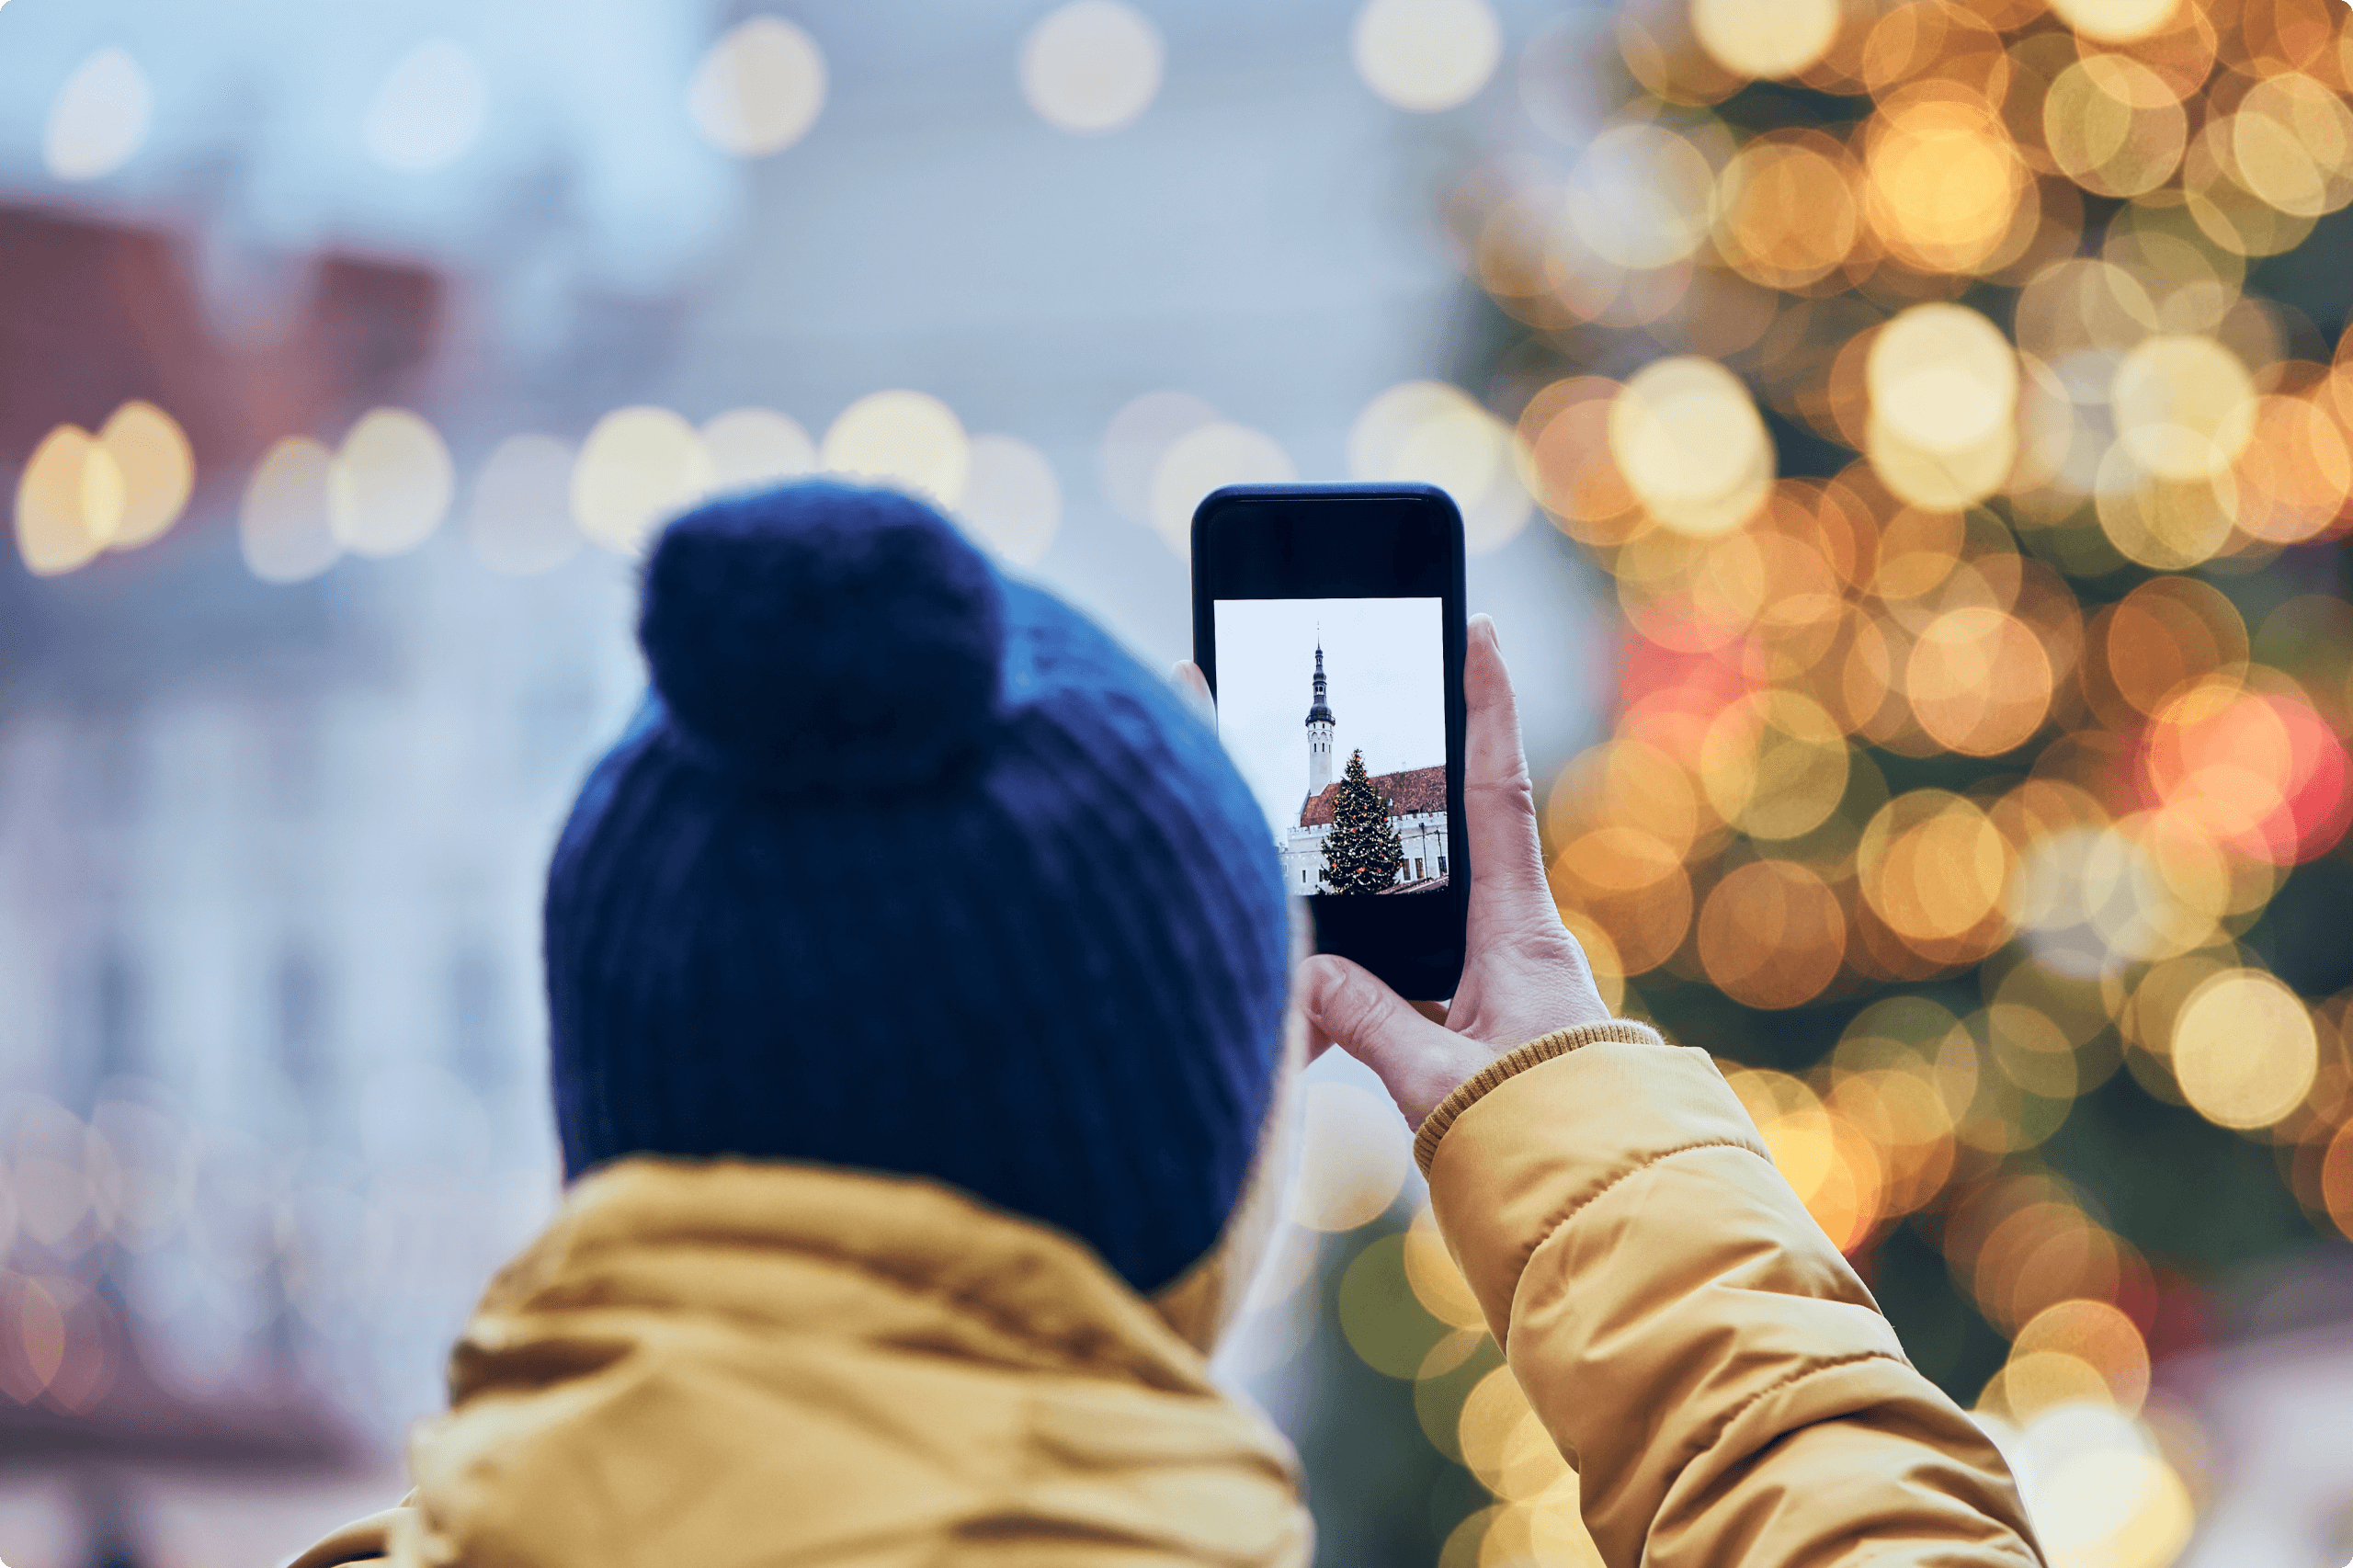 Photographer taking a picture of a Christmas tree with his smartphone